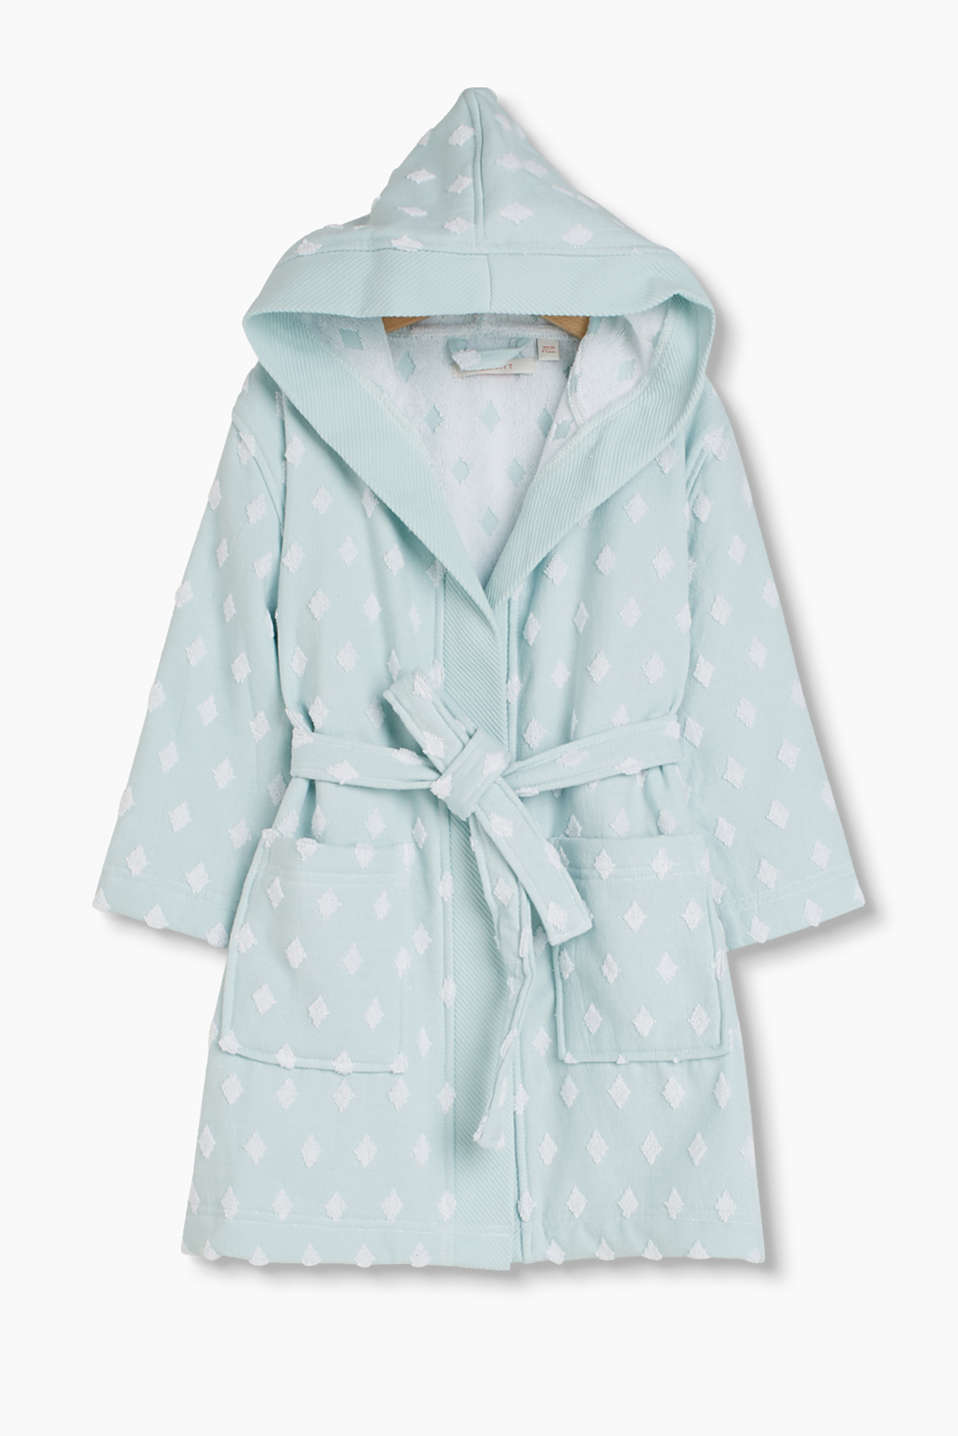 Esprit - Nord kids cotton bathrobe